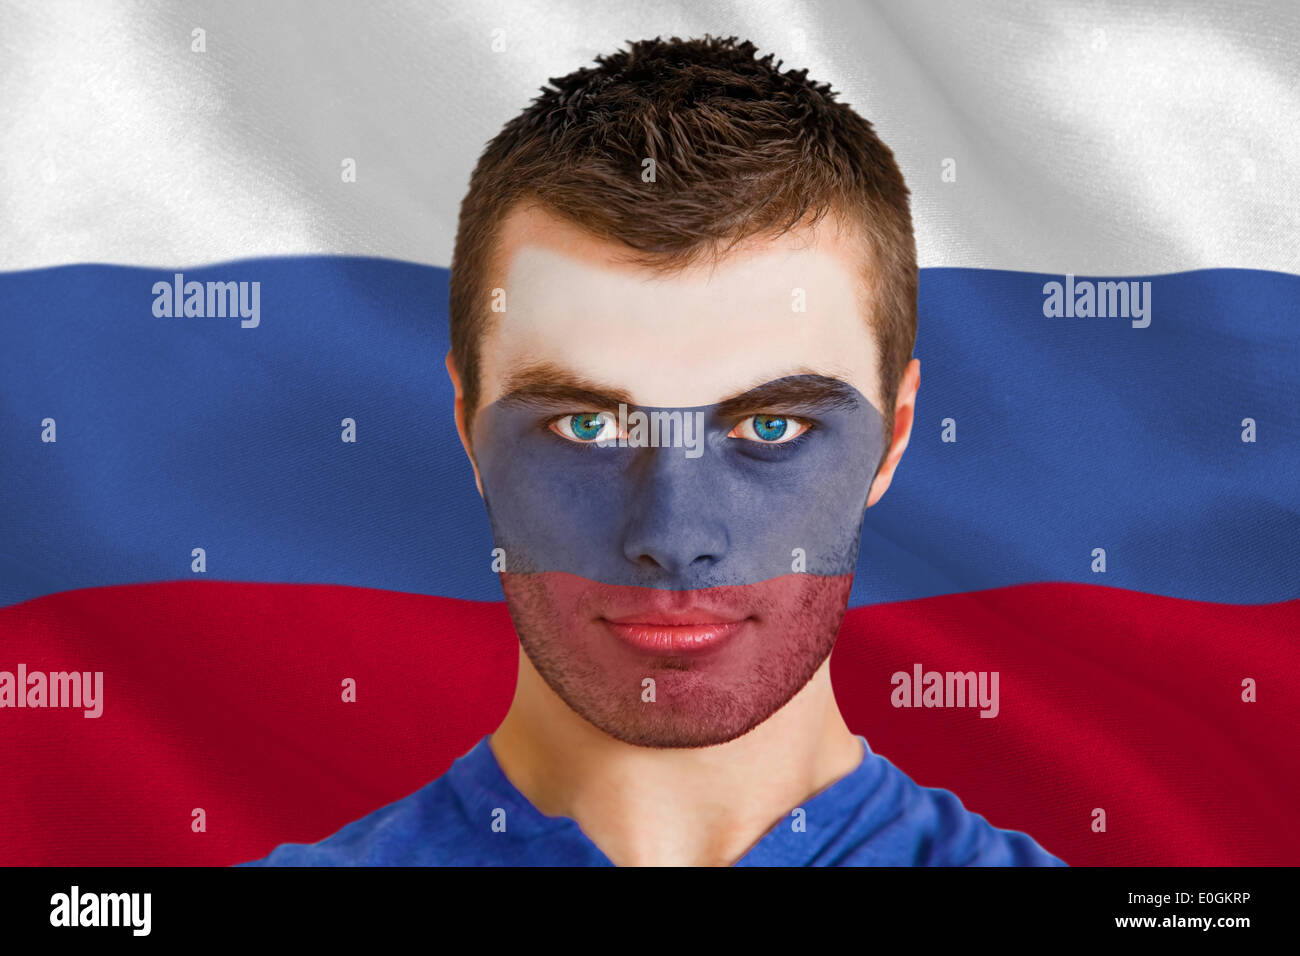 Serious young russia fan with facepaint - Stock Image